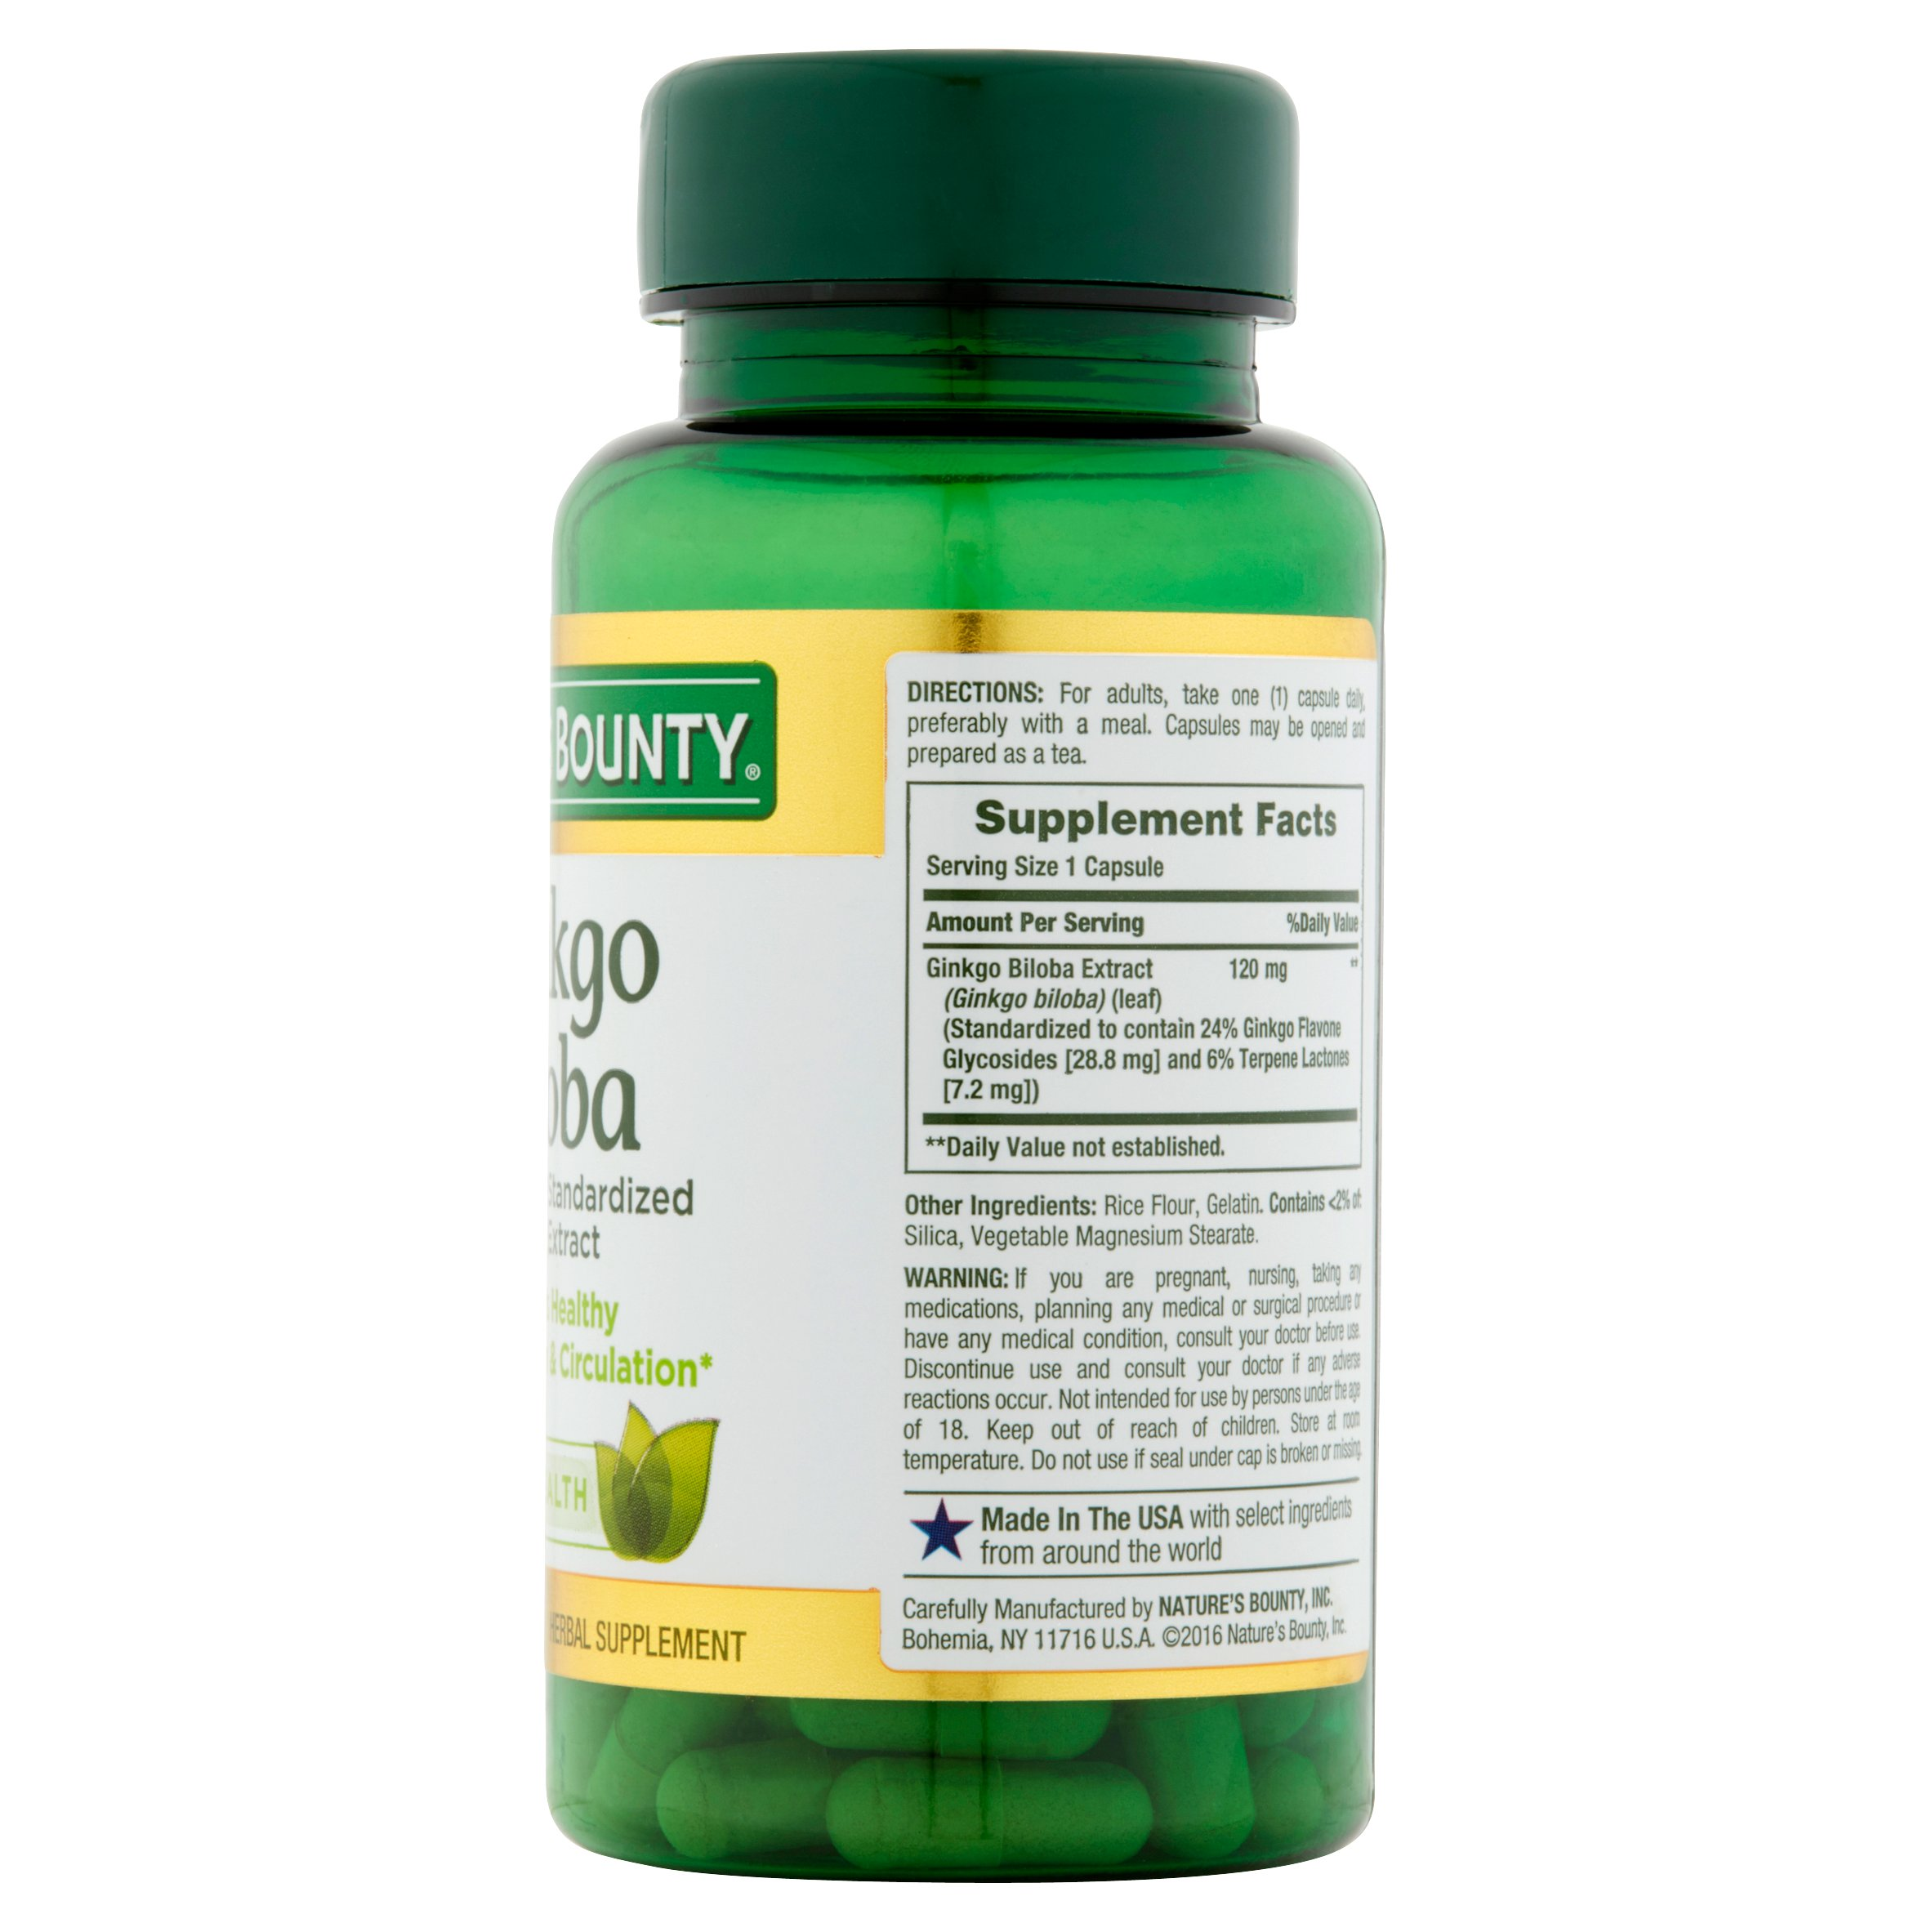 Natures bounty ginkgo biloba 120mg capsules 100 ct walmart thecheapjerseys Gallery